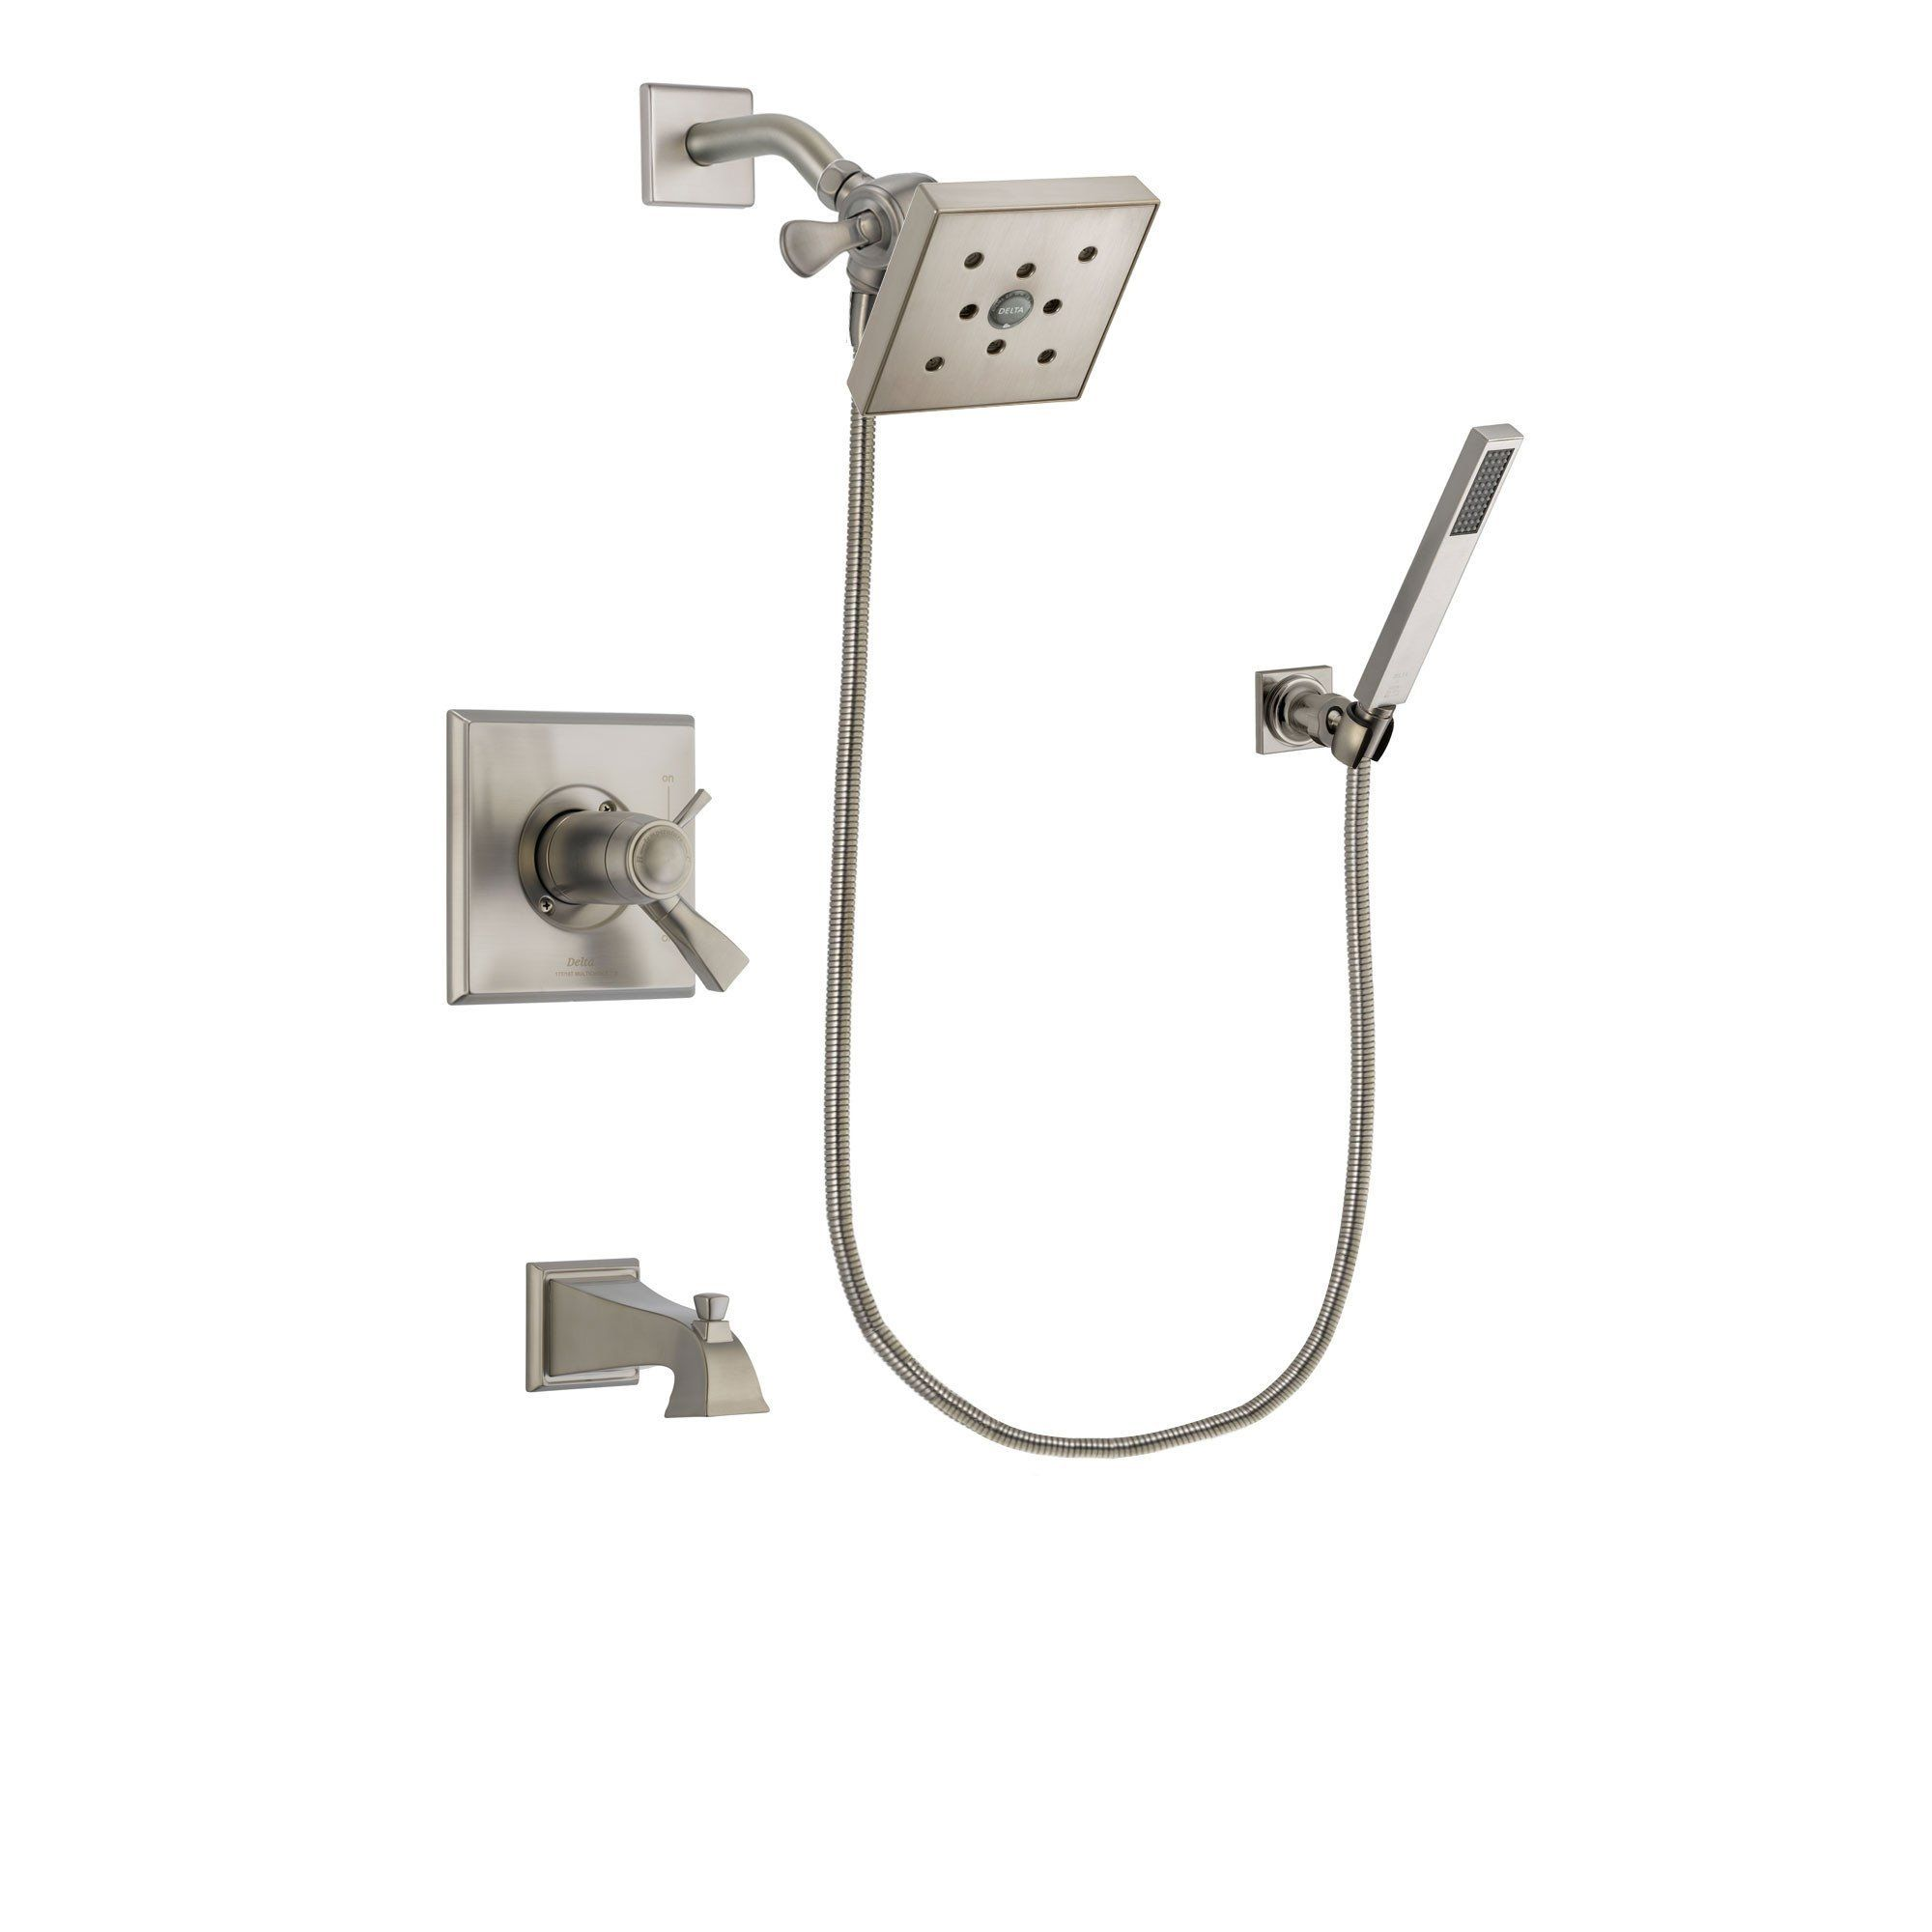 Delta Dryden Stainless Steel Finish Thermostatic Tub And Shower Faucet  System Package With Square Shower Head